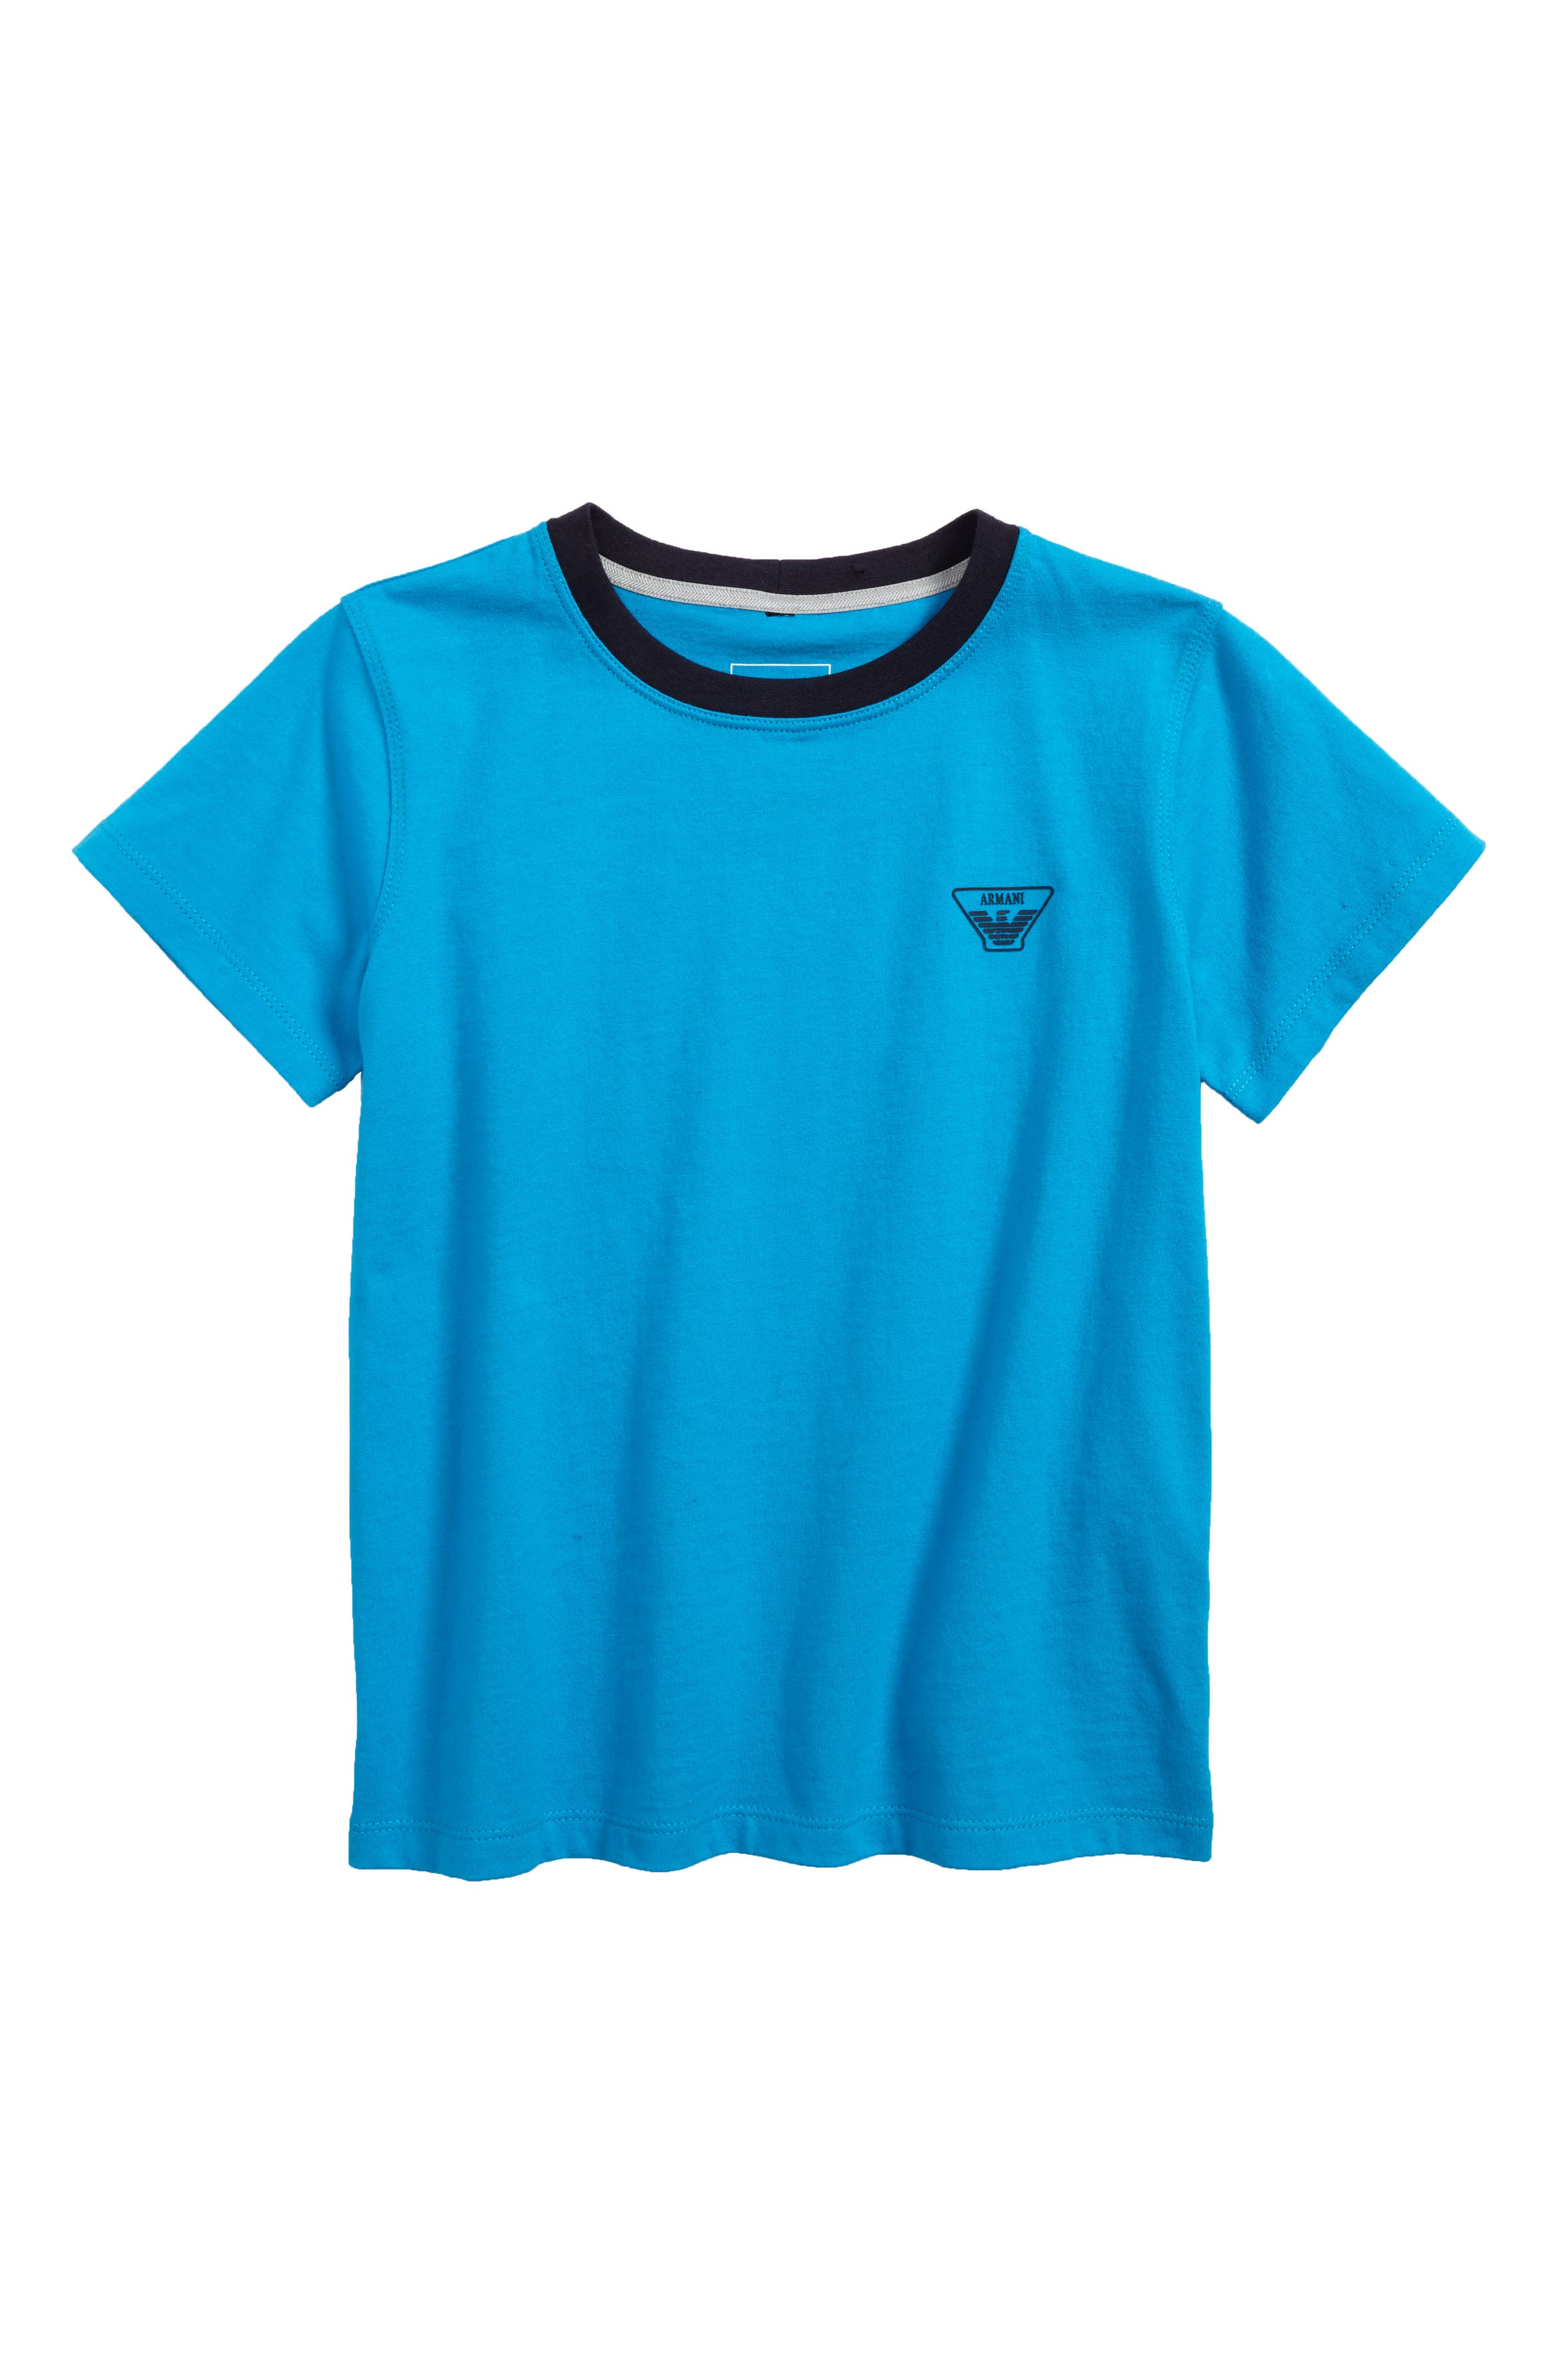 Logo T-Shirt,                             Main thumbnail 1, color,                             Turquoise